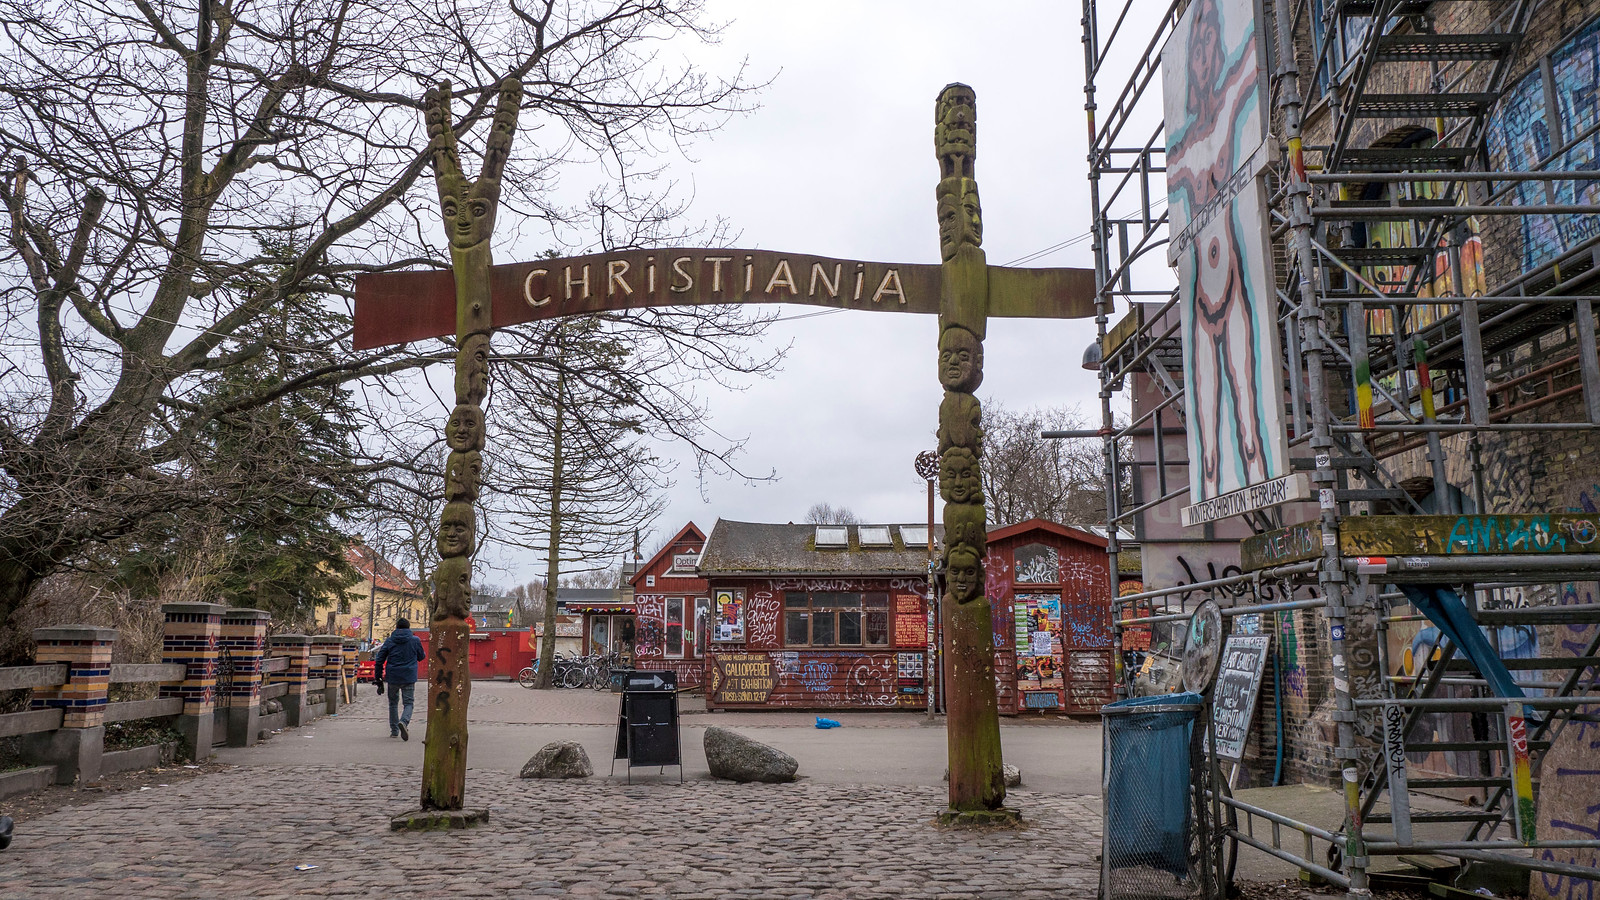 Things to Know About Freetown Christiania Copenhagen